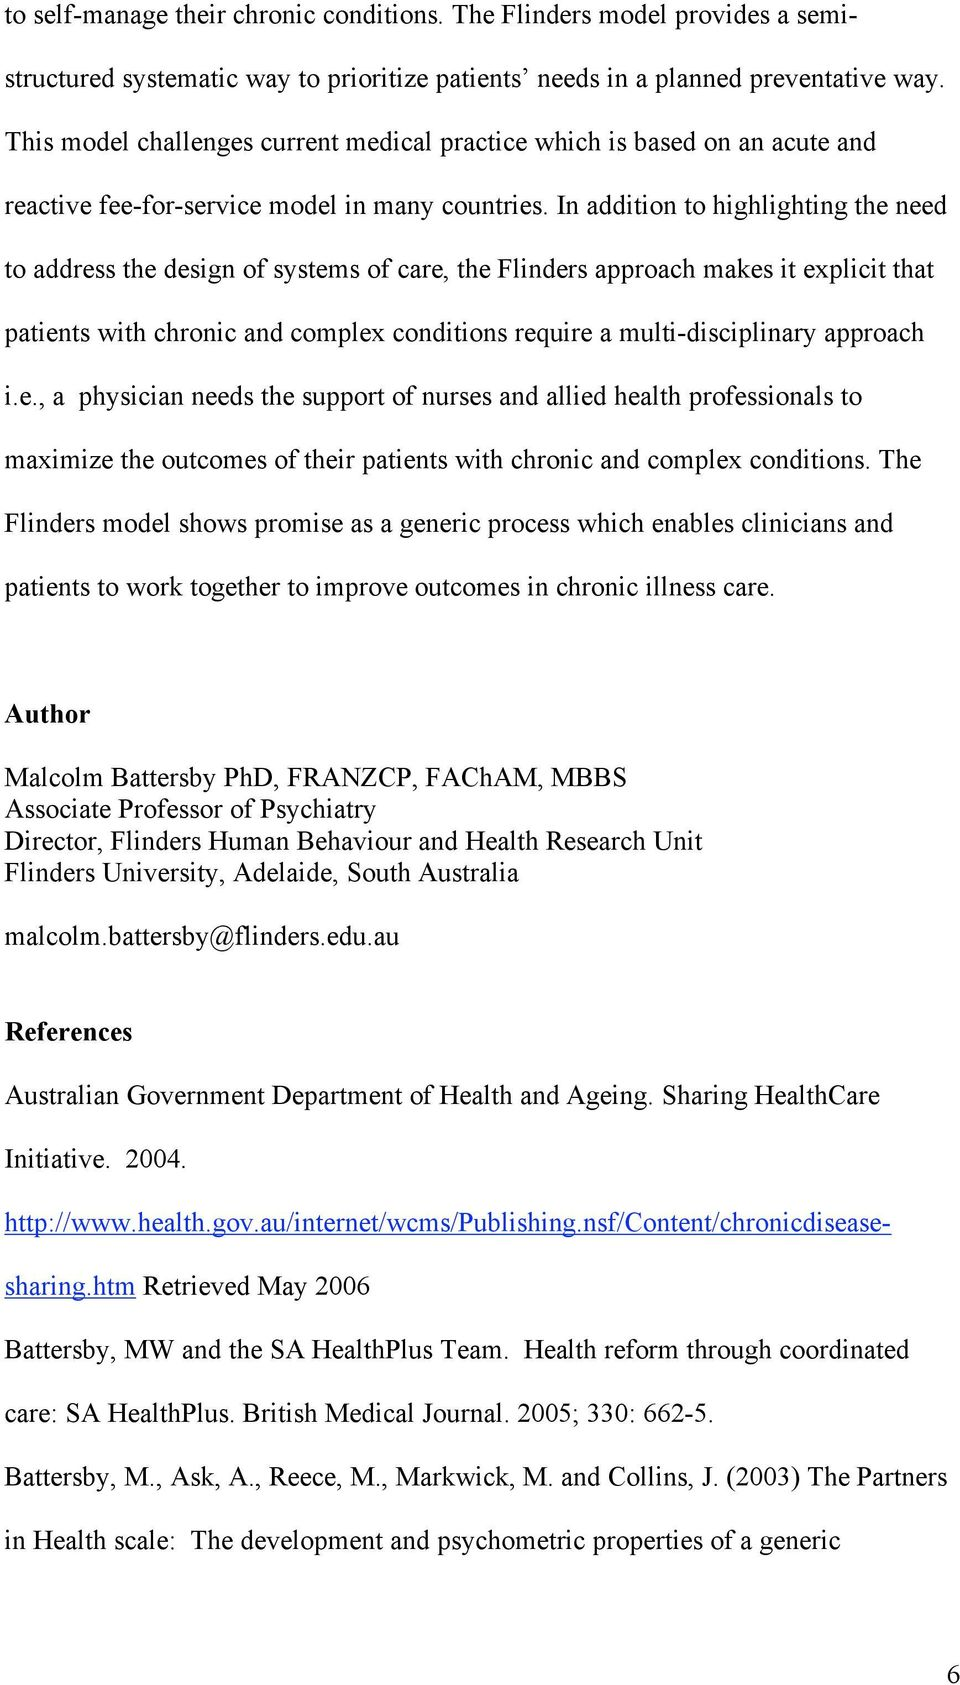 In addition to highlighting the need to address the design of systems of care, the Flinders approach makes it explicit that patients with chronic and complex conditions require a multi-disciplinary